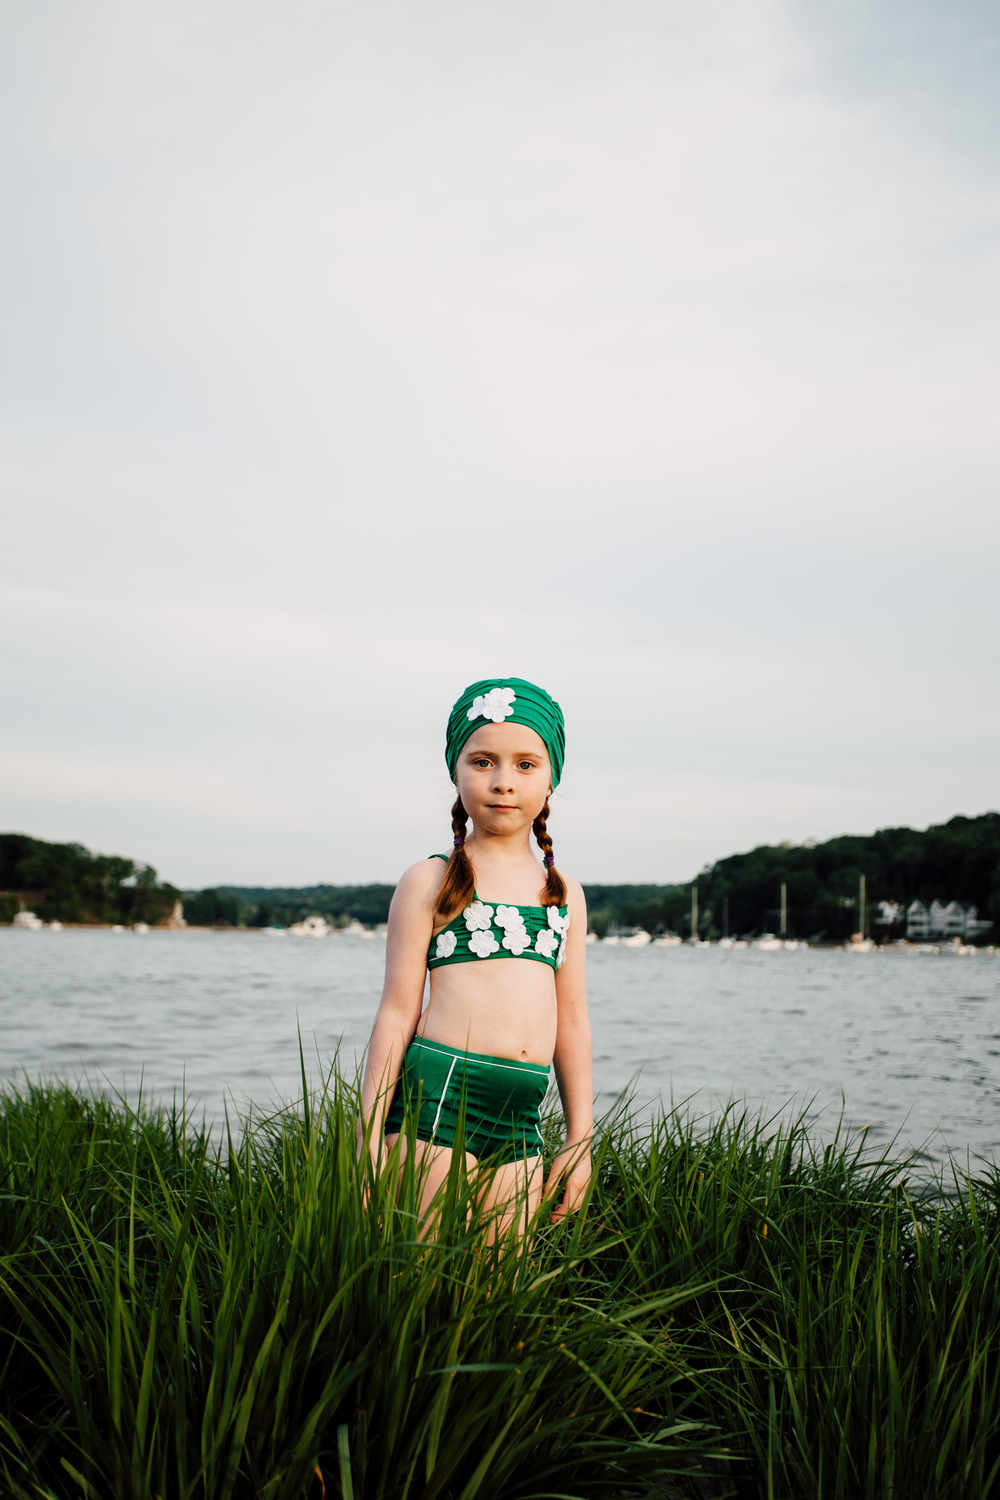 Jennifer Tippett Photography | Beach Photo Session | Child Photography